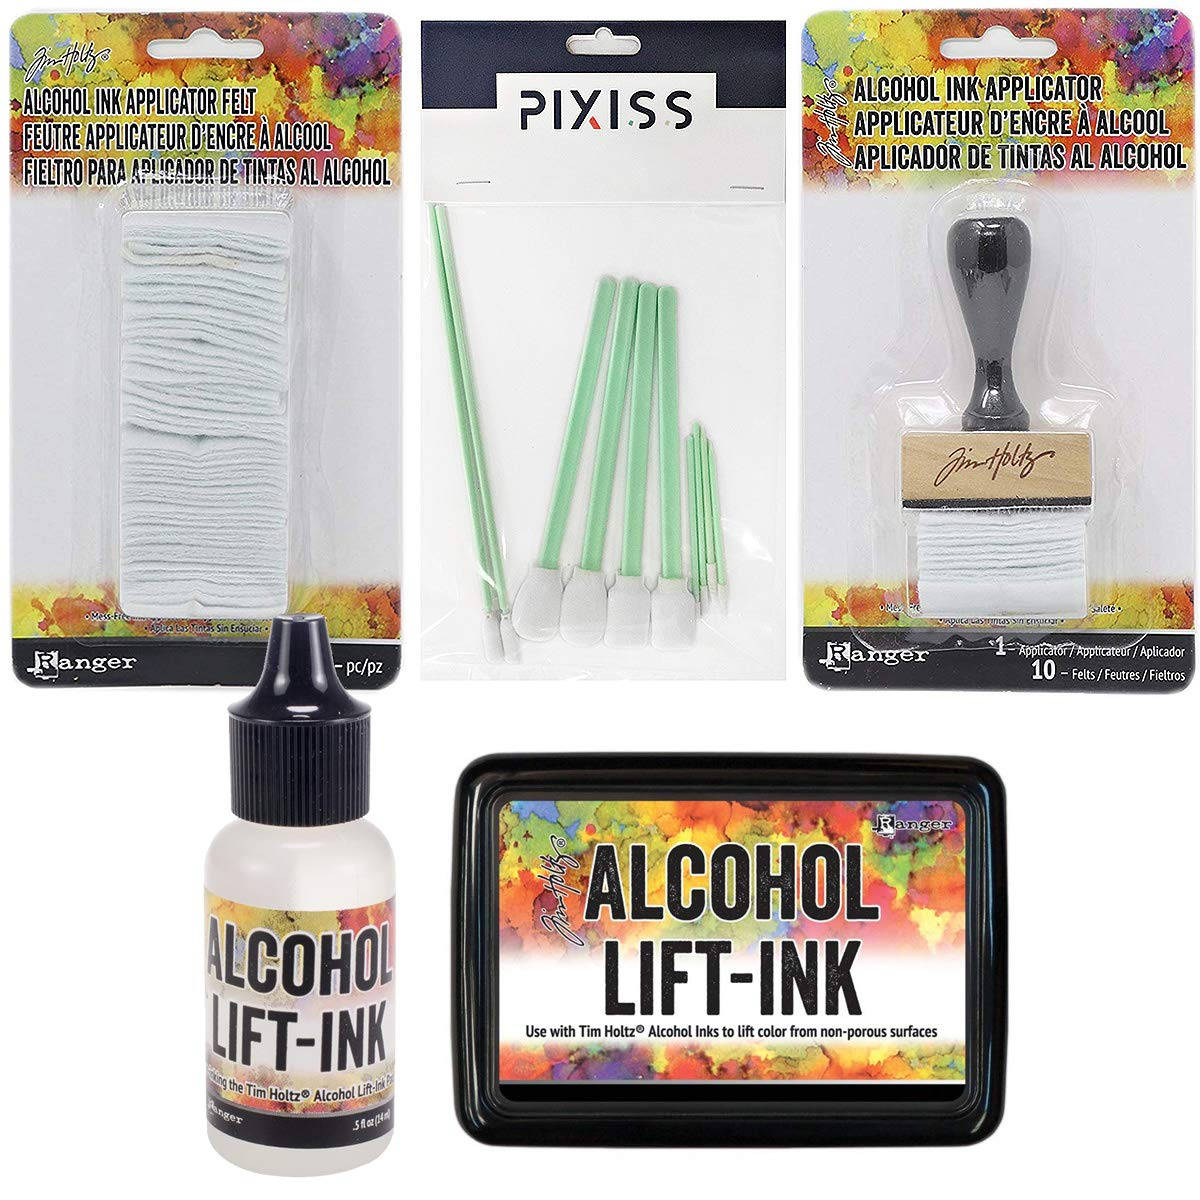 Ranger Tim Holtz Alcohol Ink Lift Ink Bundle, Alcohol Ink Applicator and 50pc Replacement Felt Pack, Lift-Ink Pad, 0.5-Ounce Alcohol Lift-Ink Reinker, ...